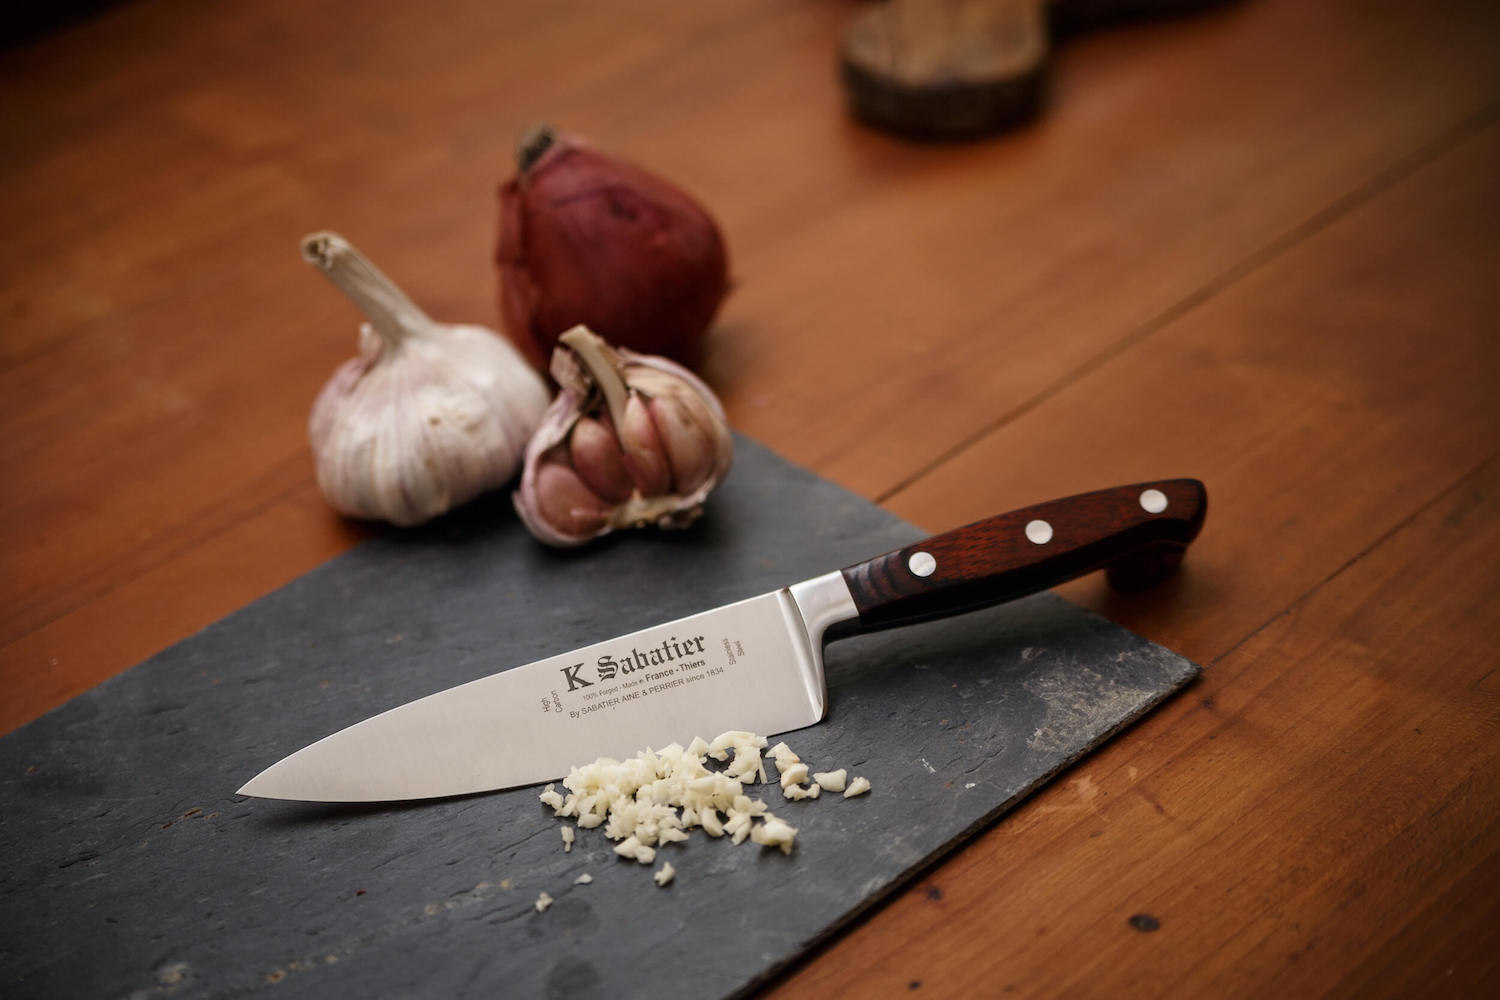 Vegetable Sabatier knife